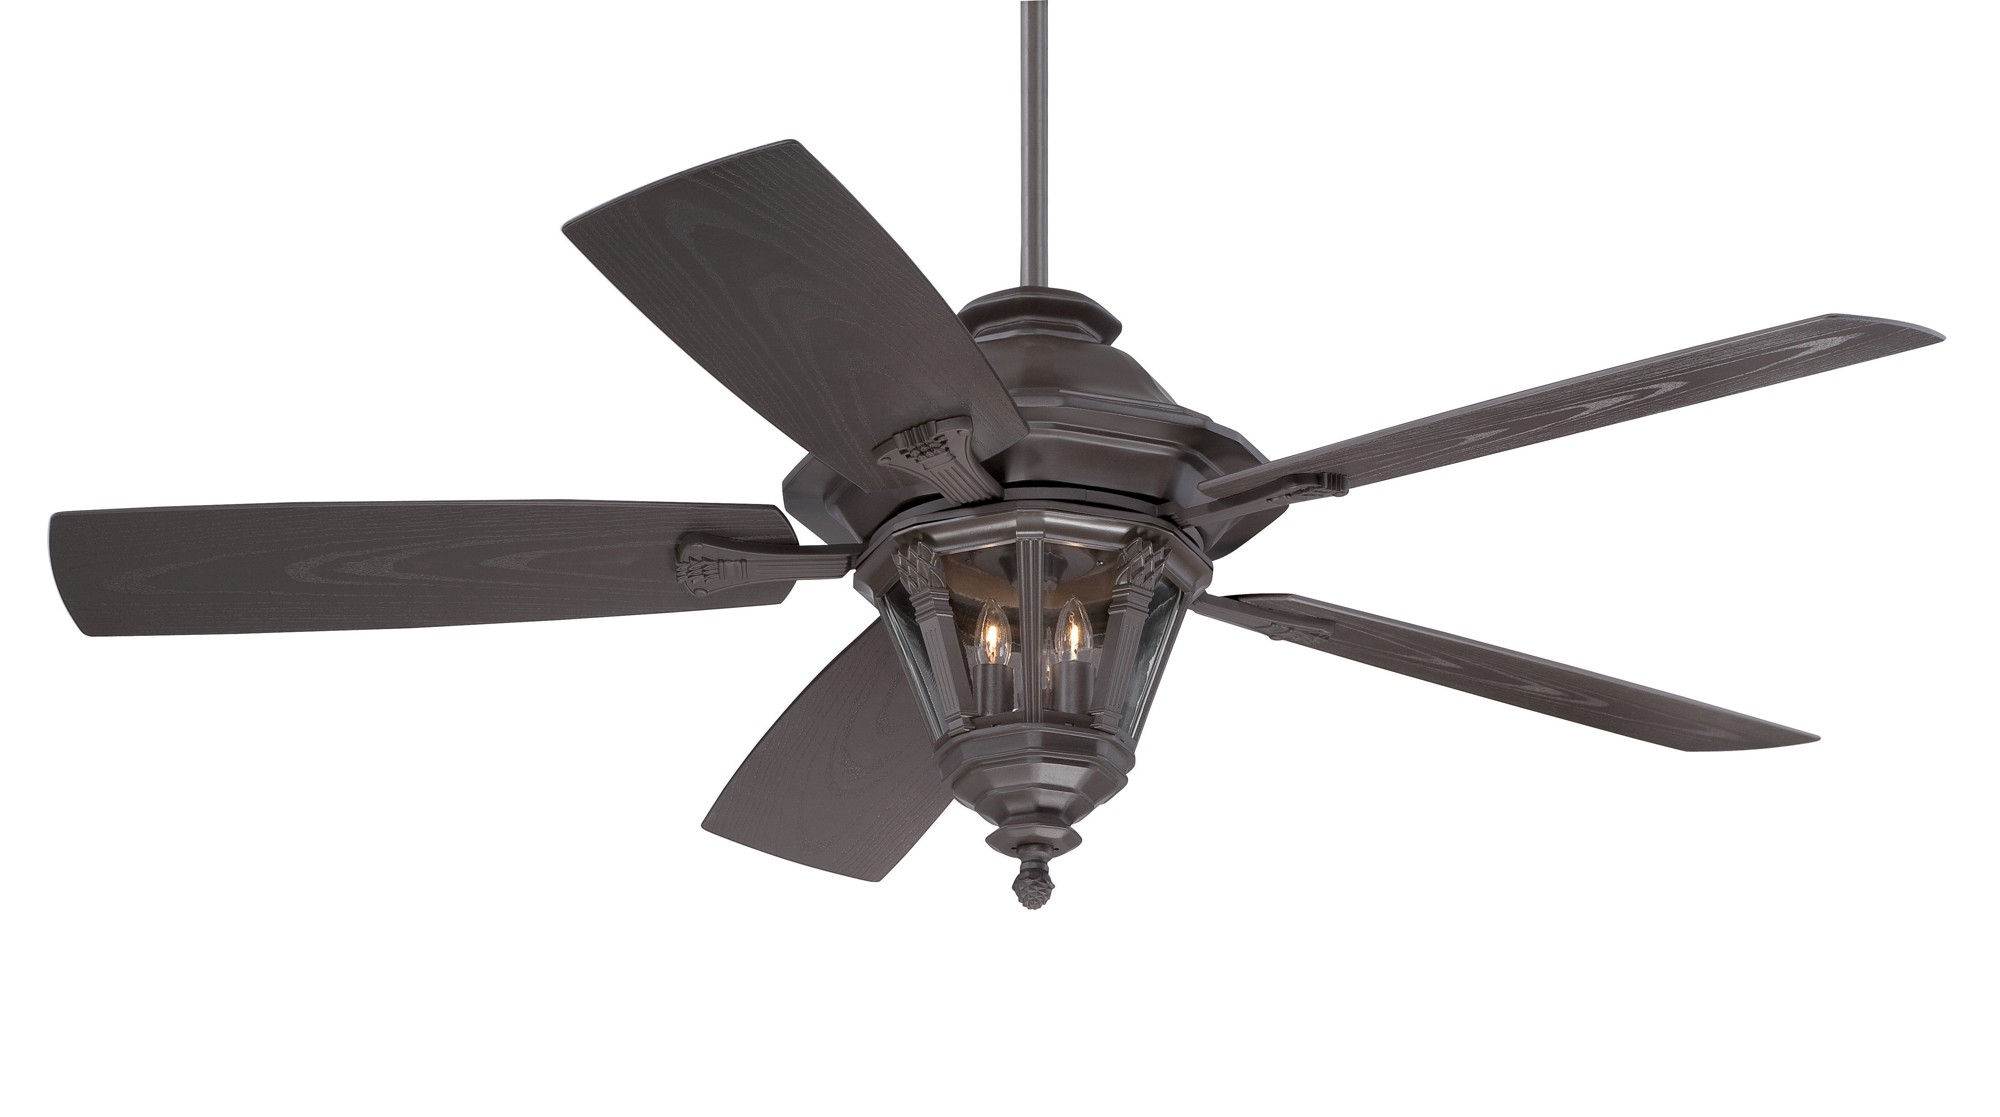 Outdoor Ceiling Fans With Lights And Remote Intended For Widely Used Harbor Breeze White Outdoor Ceiling Fan – Outdoor Designs (View 13 of 20)